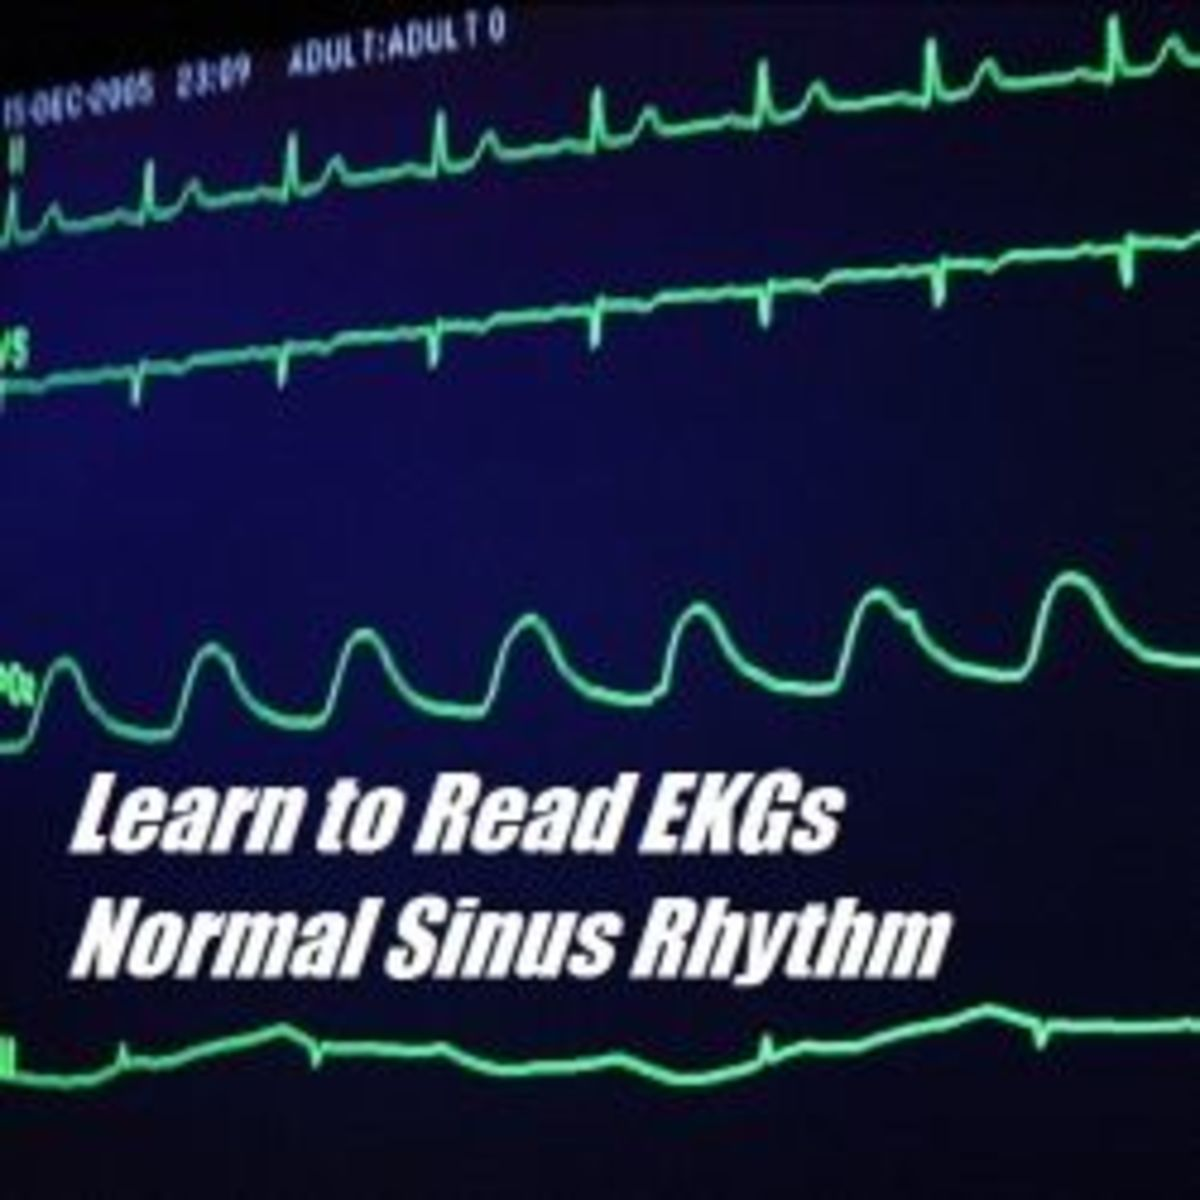 The Basics of EKG Interpretation and Rhythm Recognition: Normal Sinus Rhythm